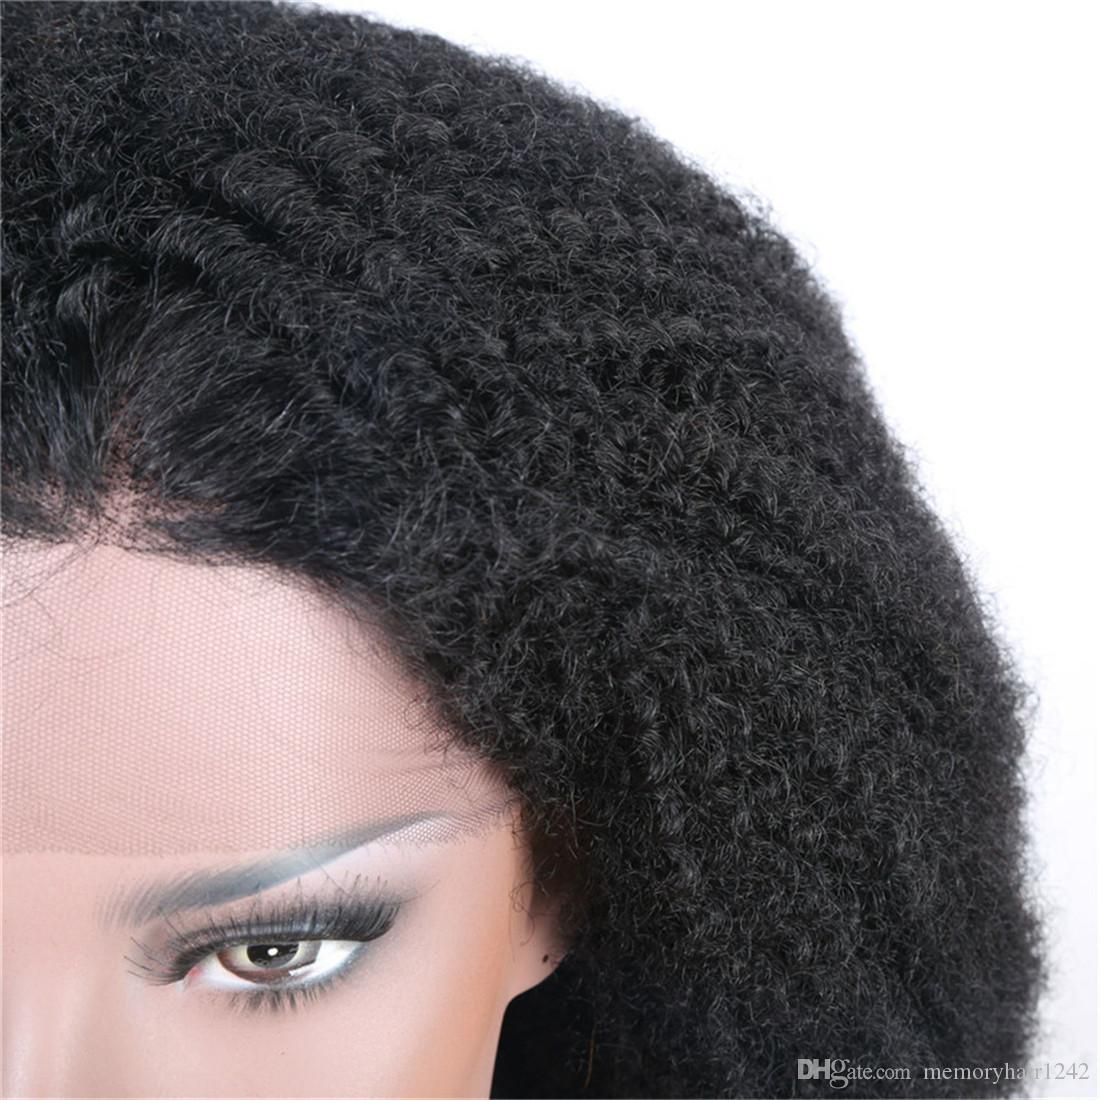 Afro Curly Front Lace Wig Human Hair Brazilian Malaysian Remy Vrigin Natural Color Hand-made 130% Density Swiss Lace Baby Hair